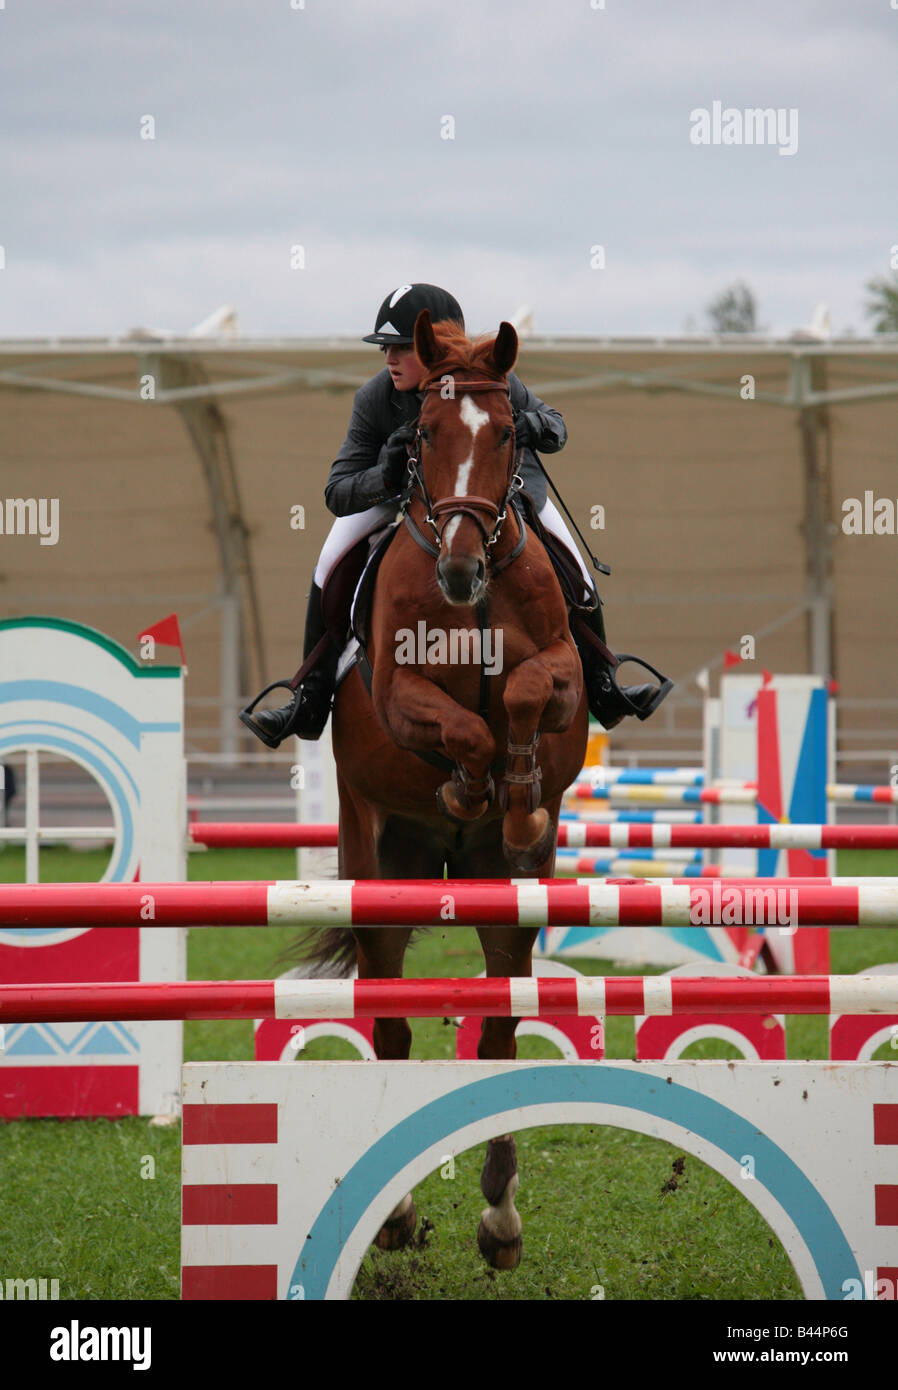 Rider jumping fence showjumping competition - Stock Image